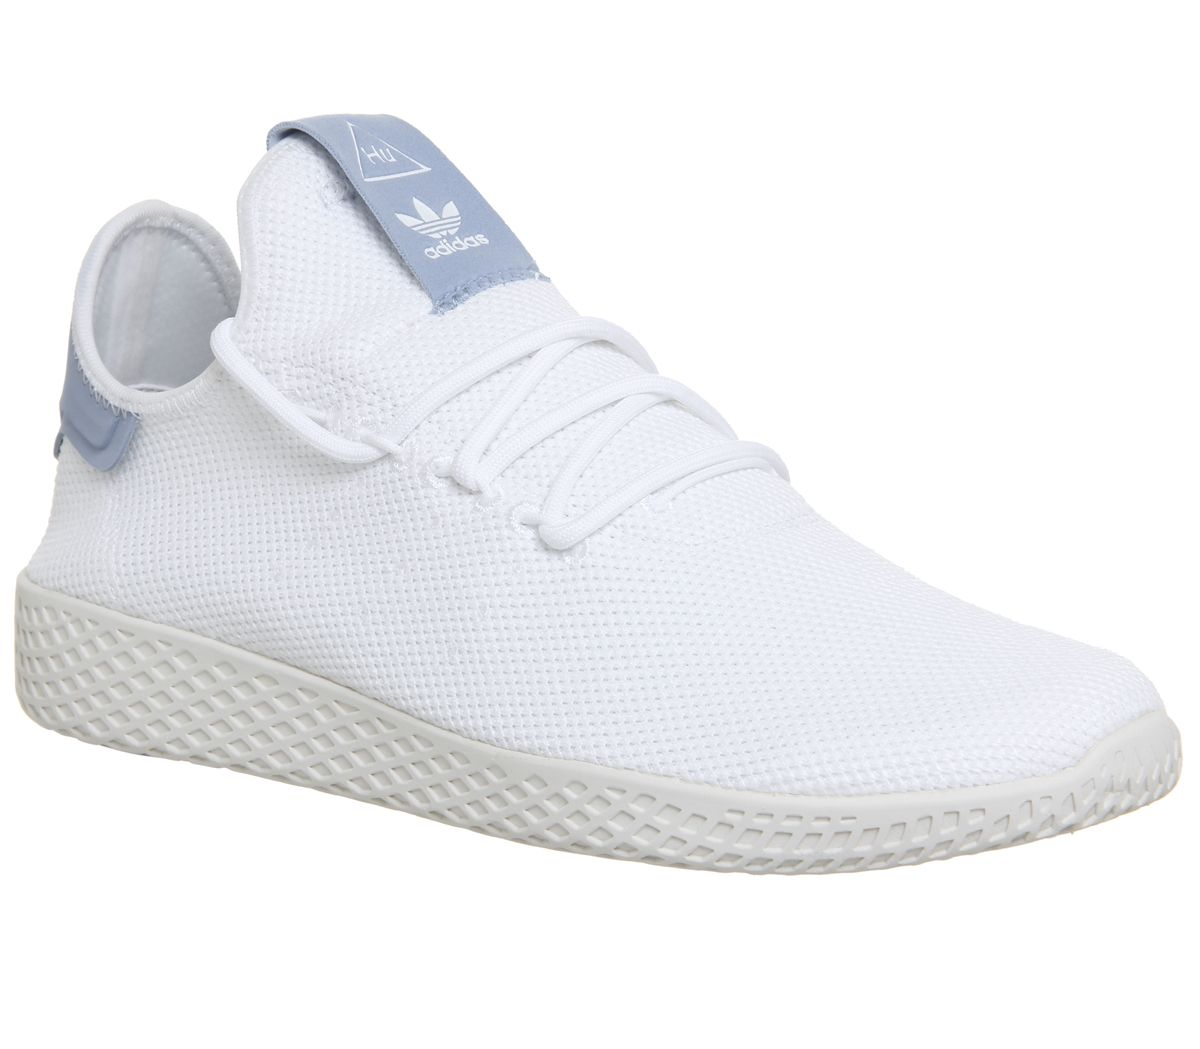 7bff253a0 Sentinel Mens Adidas Pw Tennis Hu White White Blue Trainers Shoes